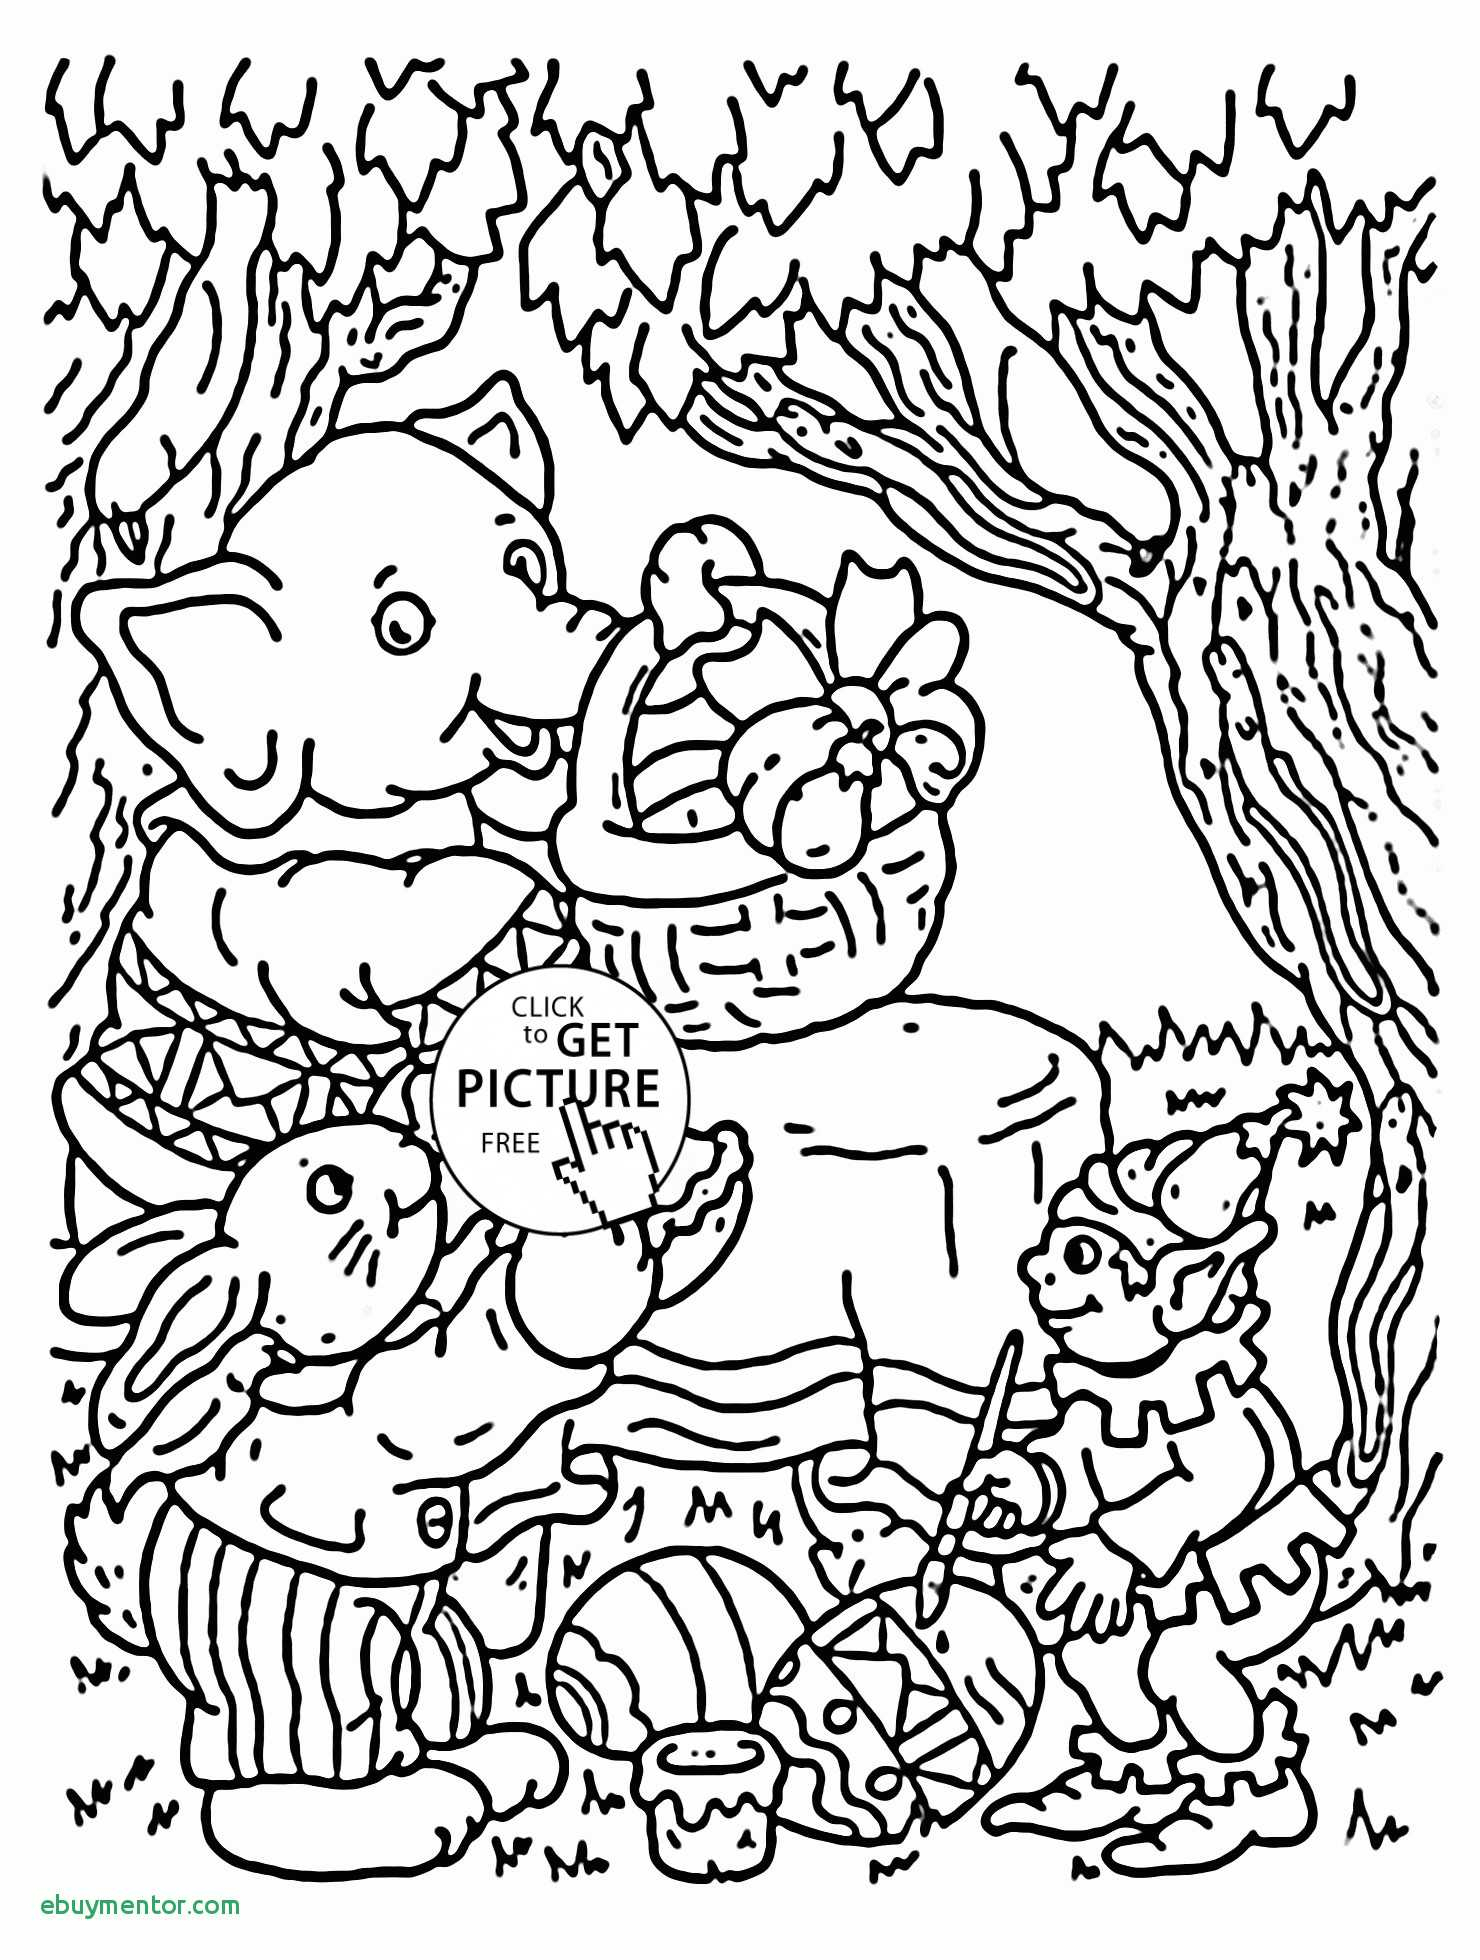 Otter Coloring Pages  Download 4a - Free For Children